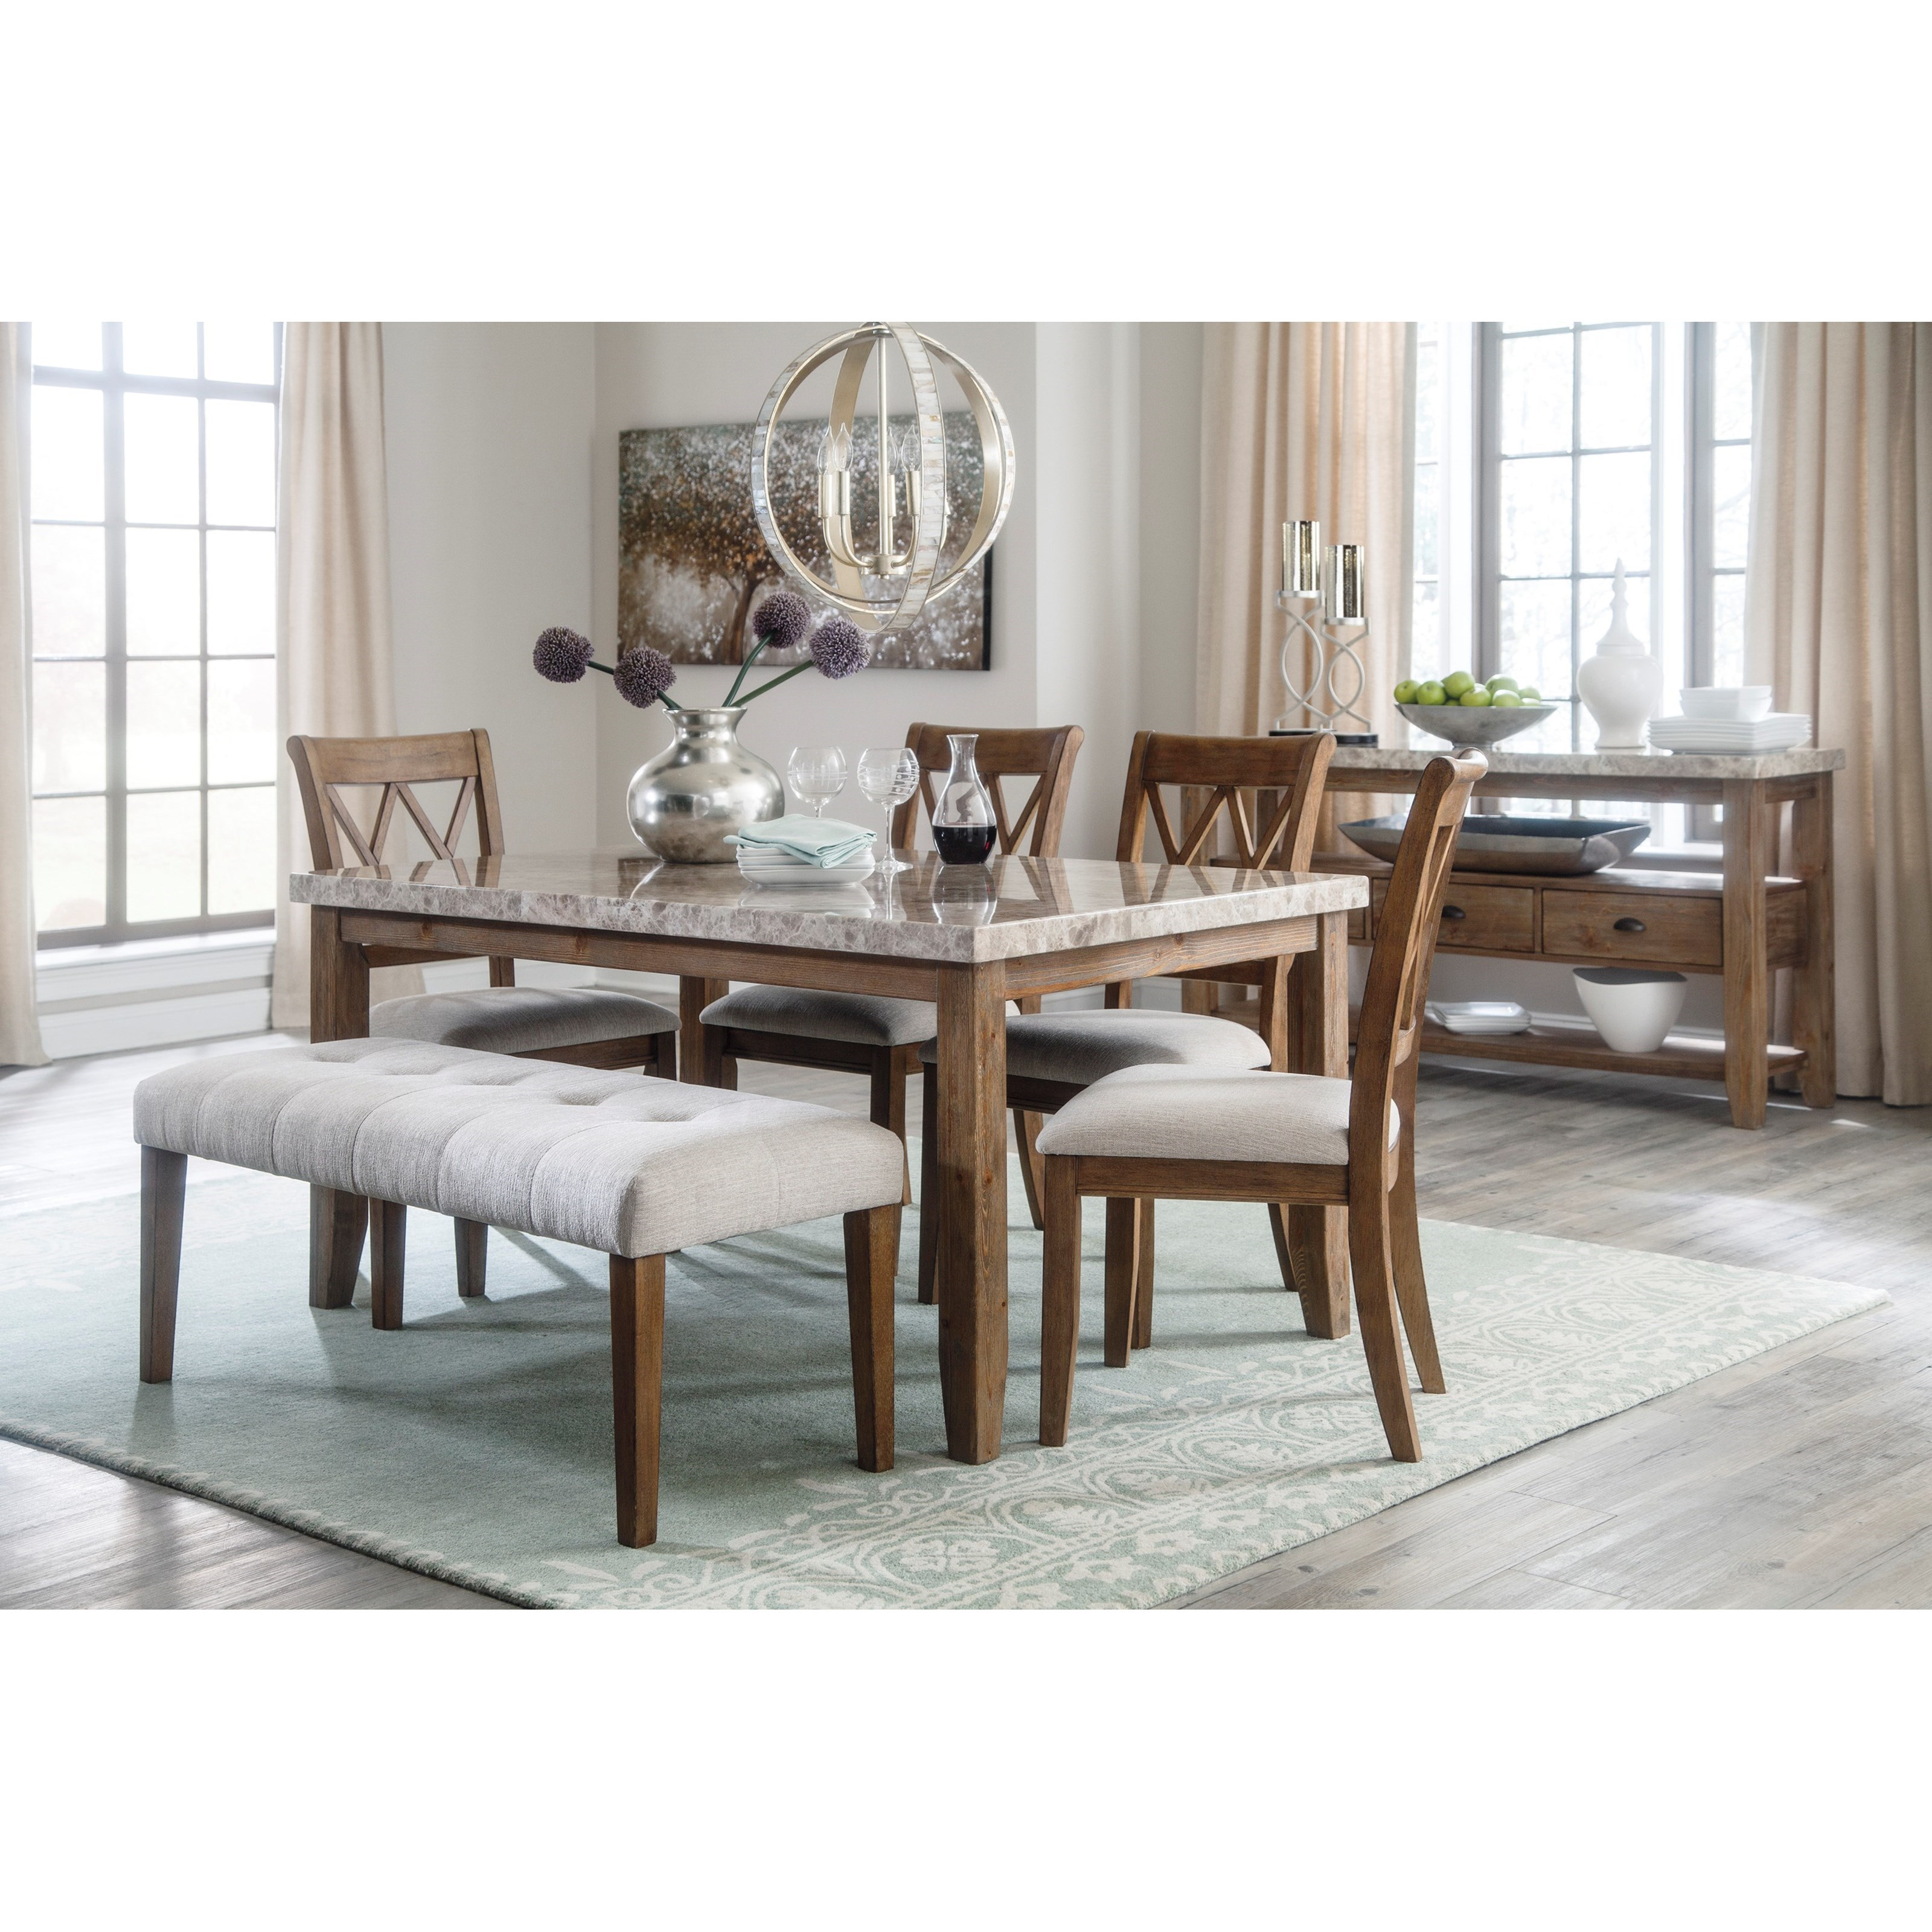 Large Upholstered Dining Room Bench With Linen Like Fabric Tufted Seat